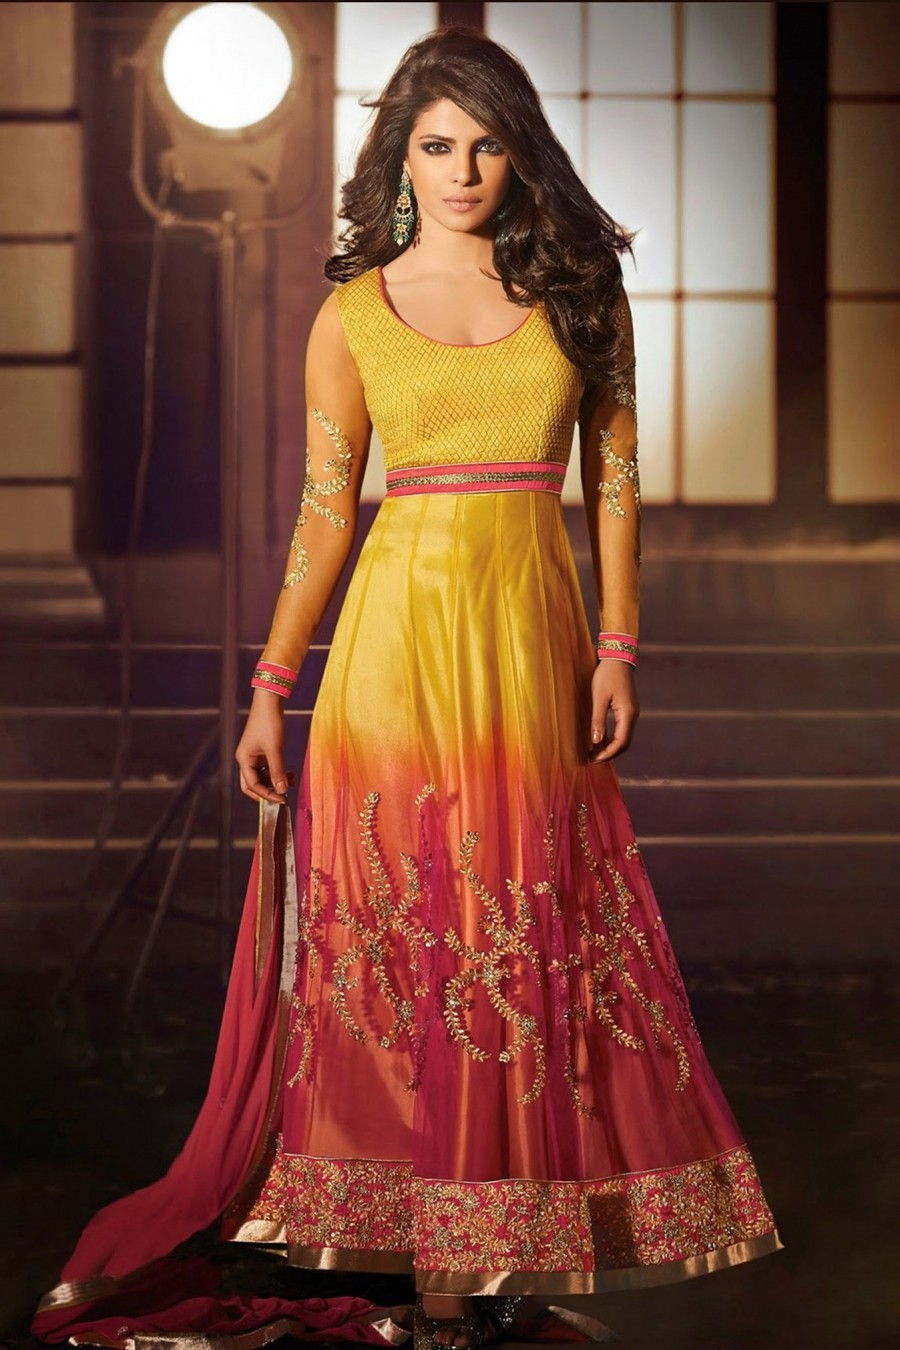 Buy Priyanka Chopra Gorgeous Yellow and Orange Net Anarkali Suit with Border and Stone Work with Dupatta  Online